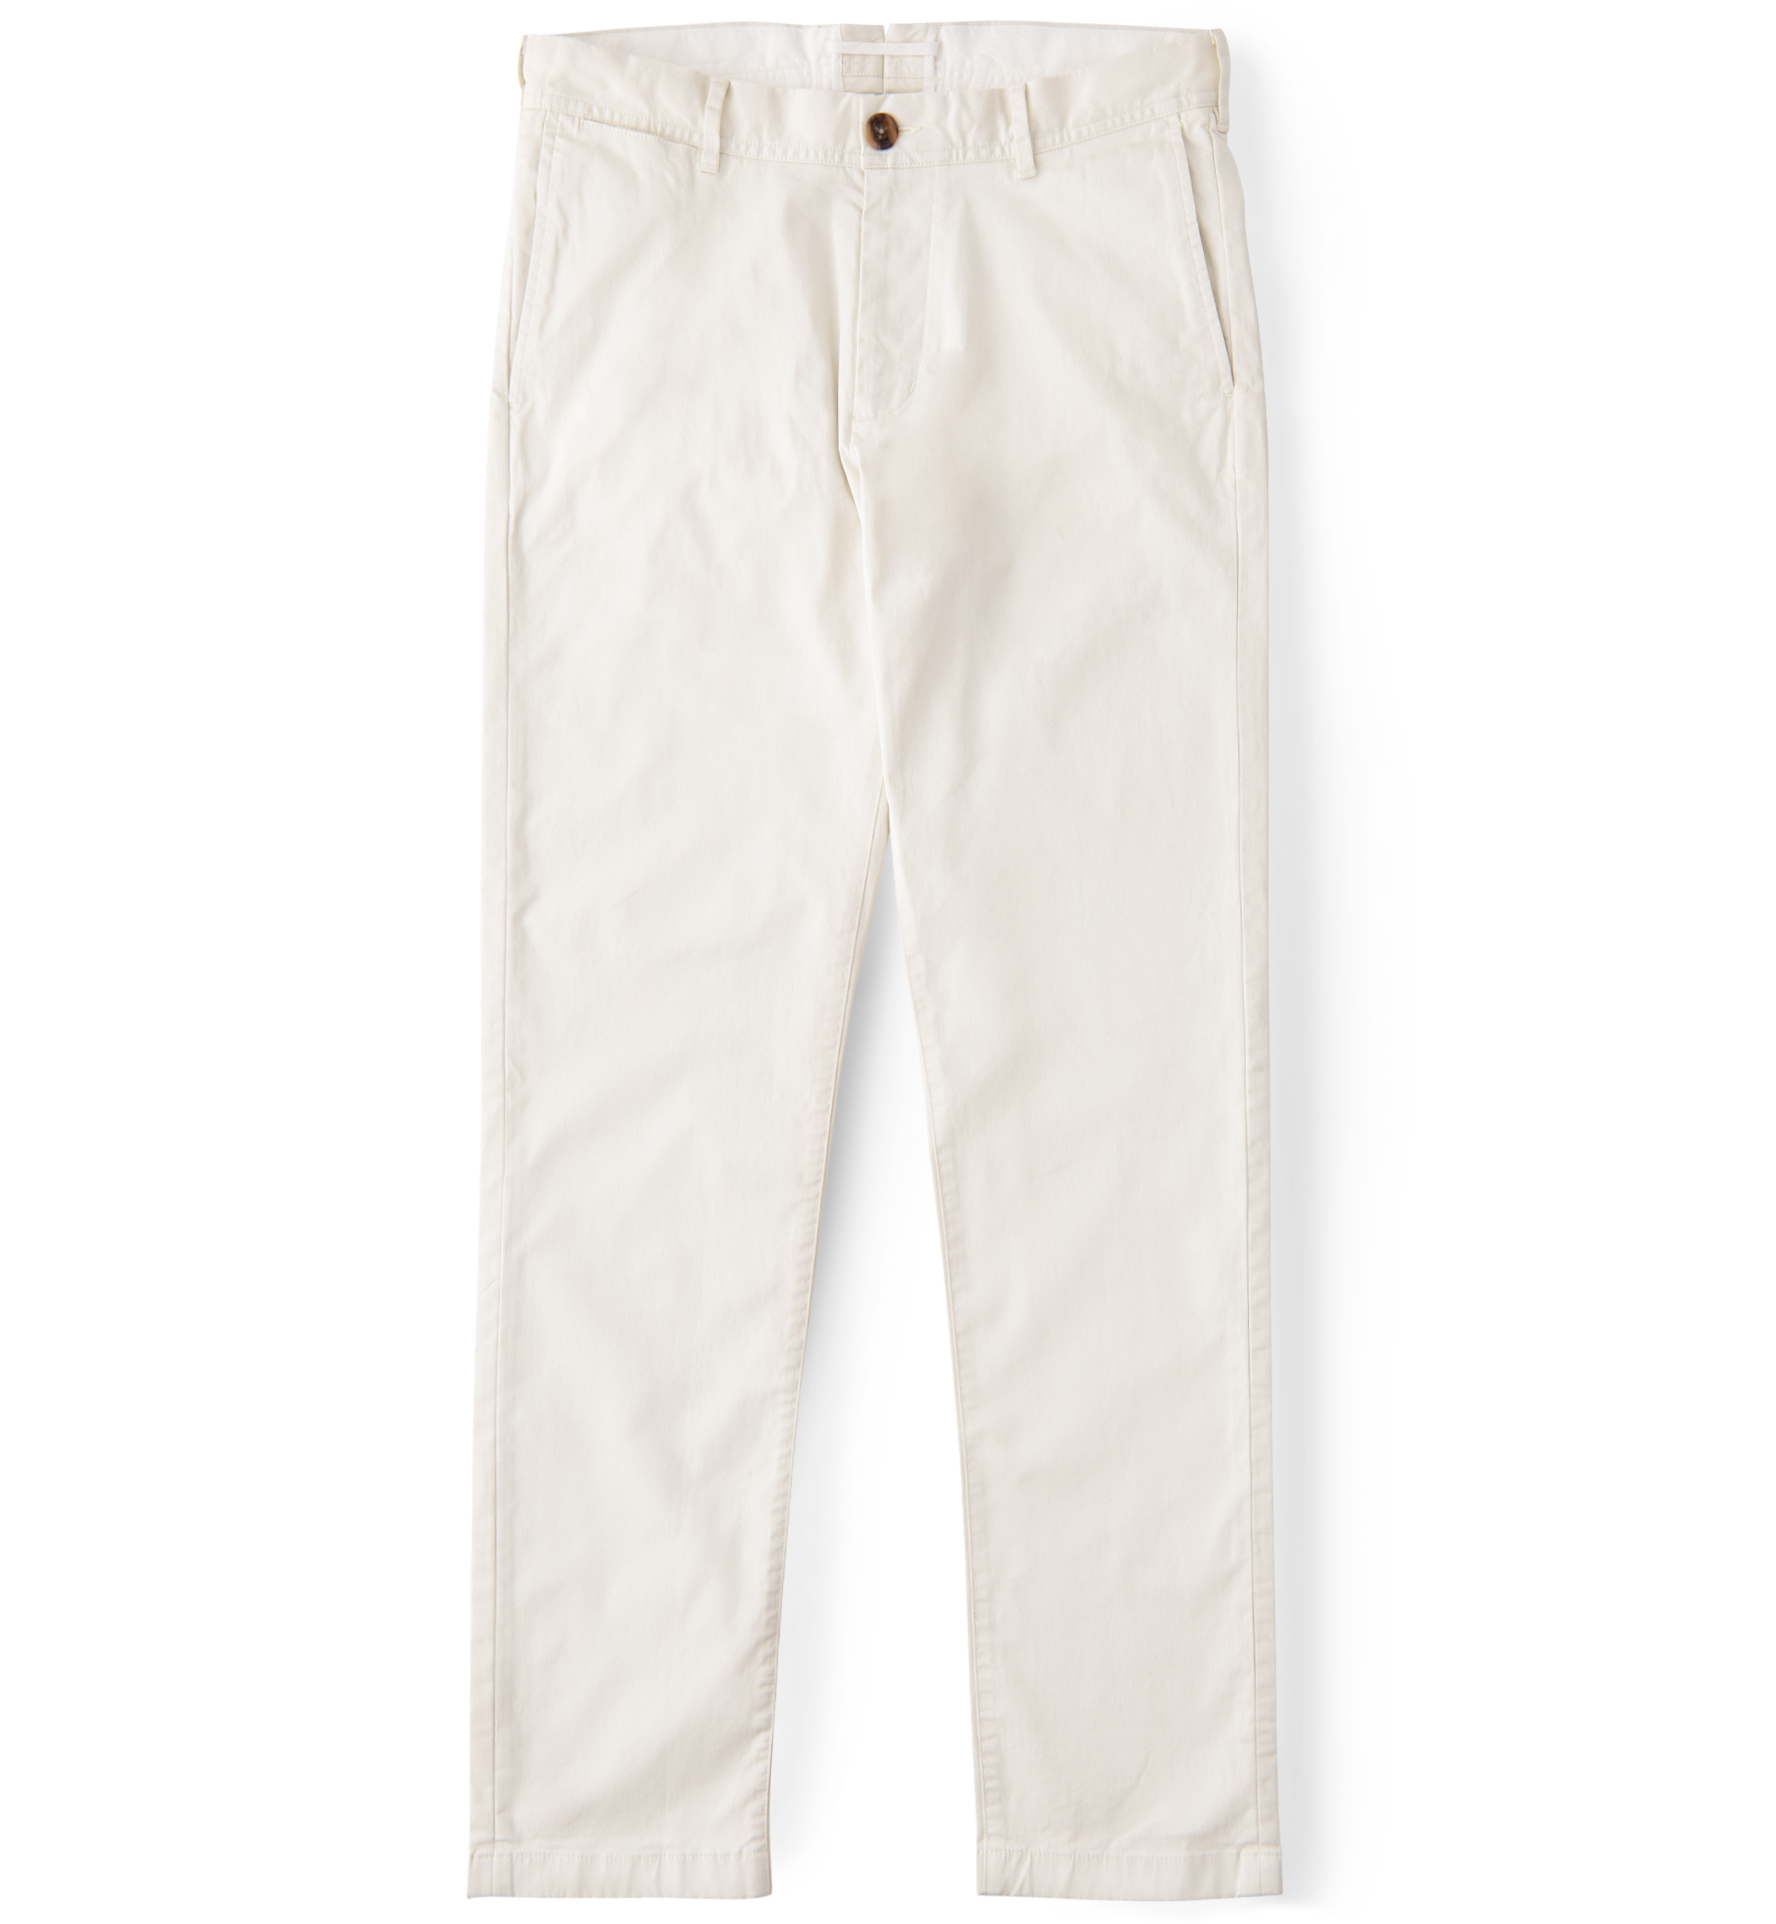 Zoom Image of Bowery Natural White Stretch Cotton Chino